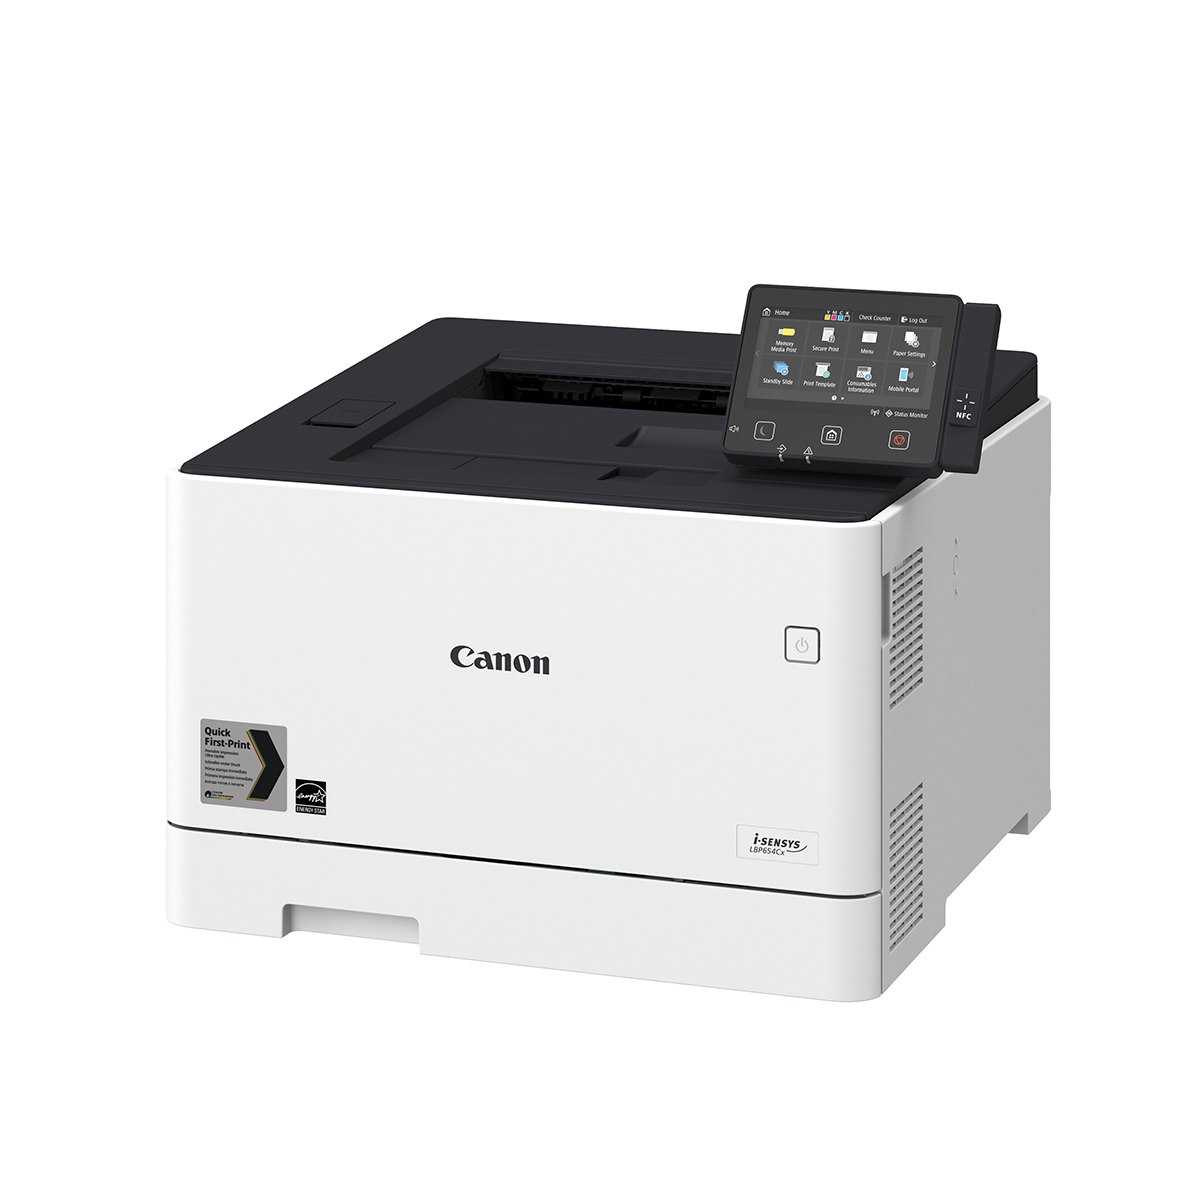 Canon i-SENSYS LBP654Cx Colour Laser Printer